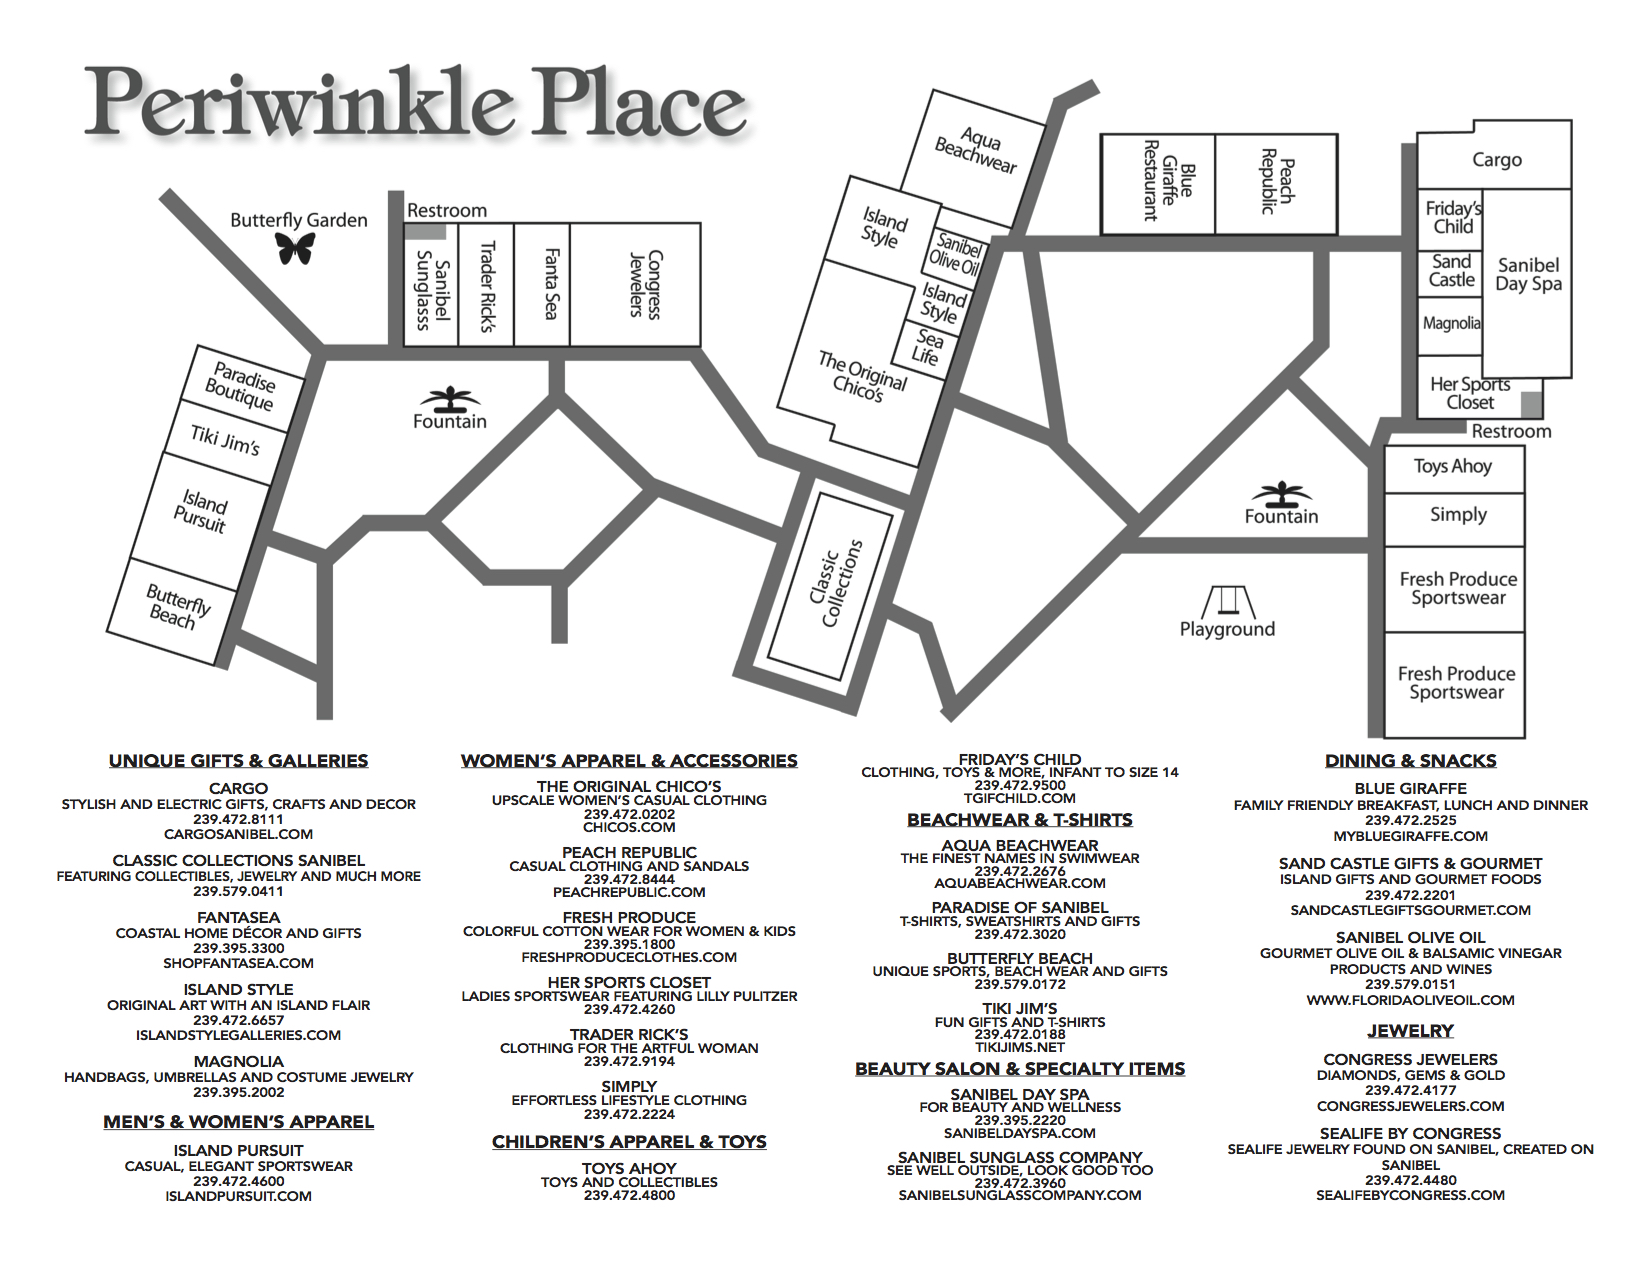 Periwinkle Place Map